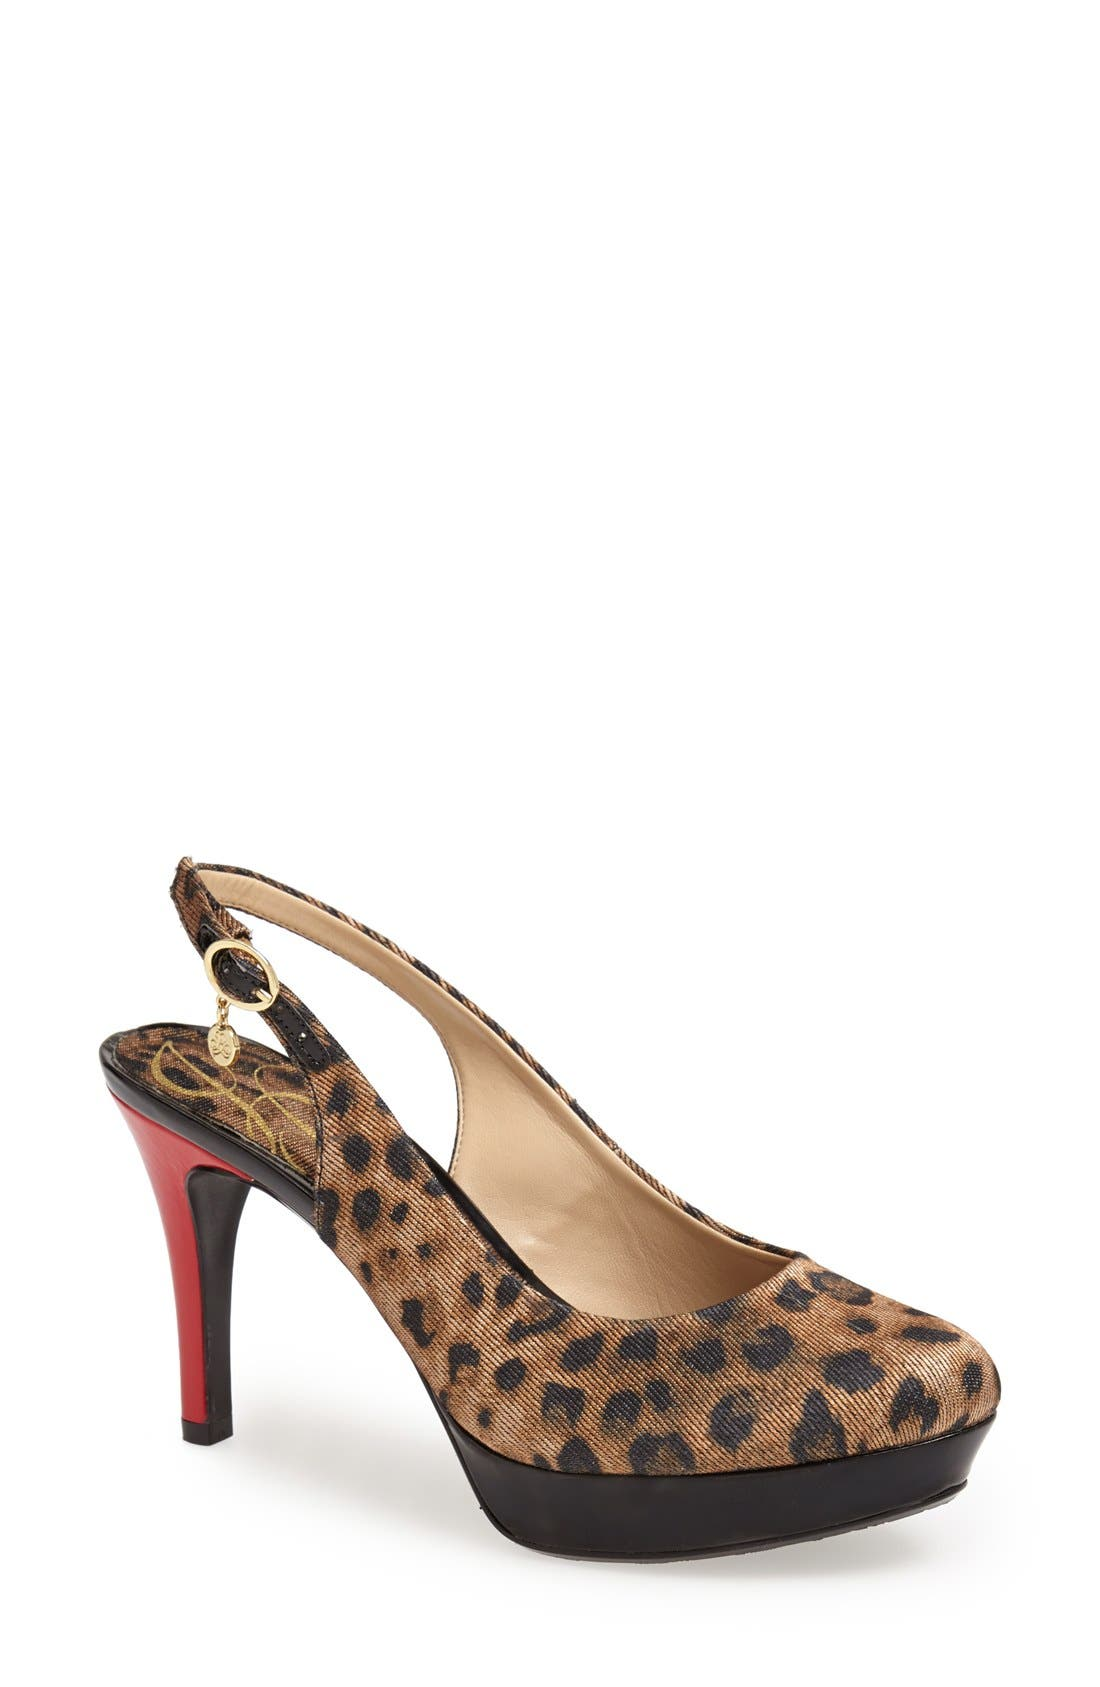 Alternate Image 1 Selected - J. Reneé 'Devlin' Platform Pump